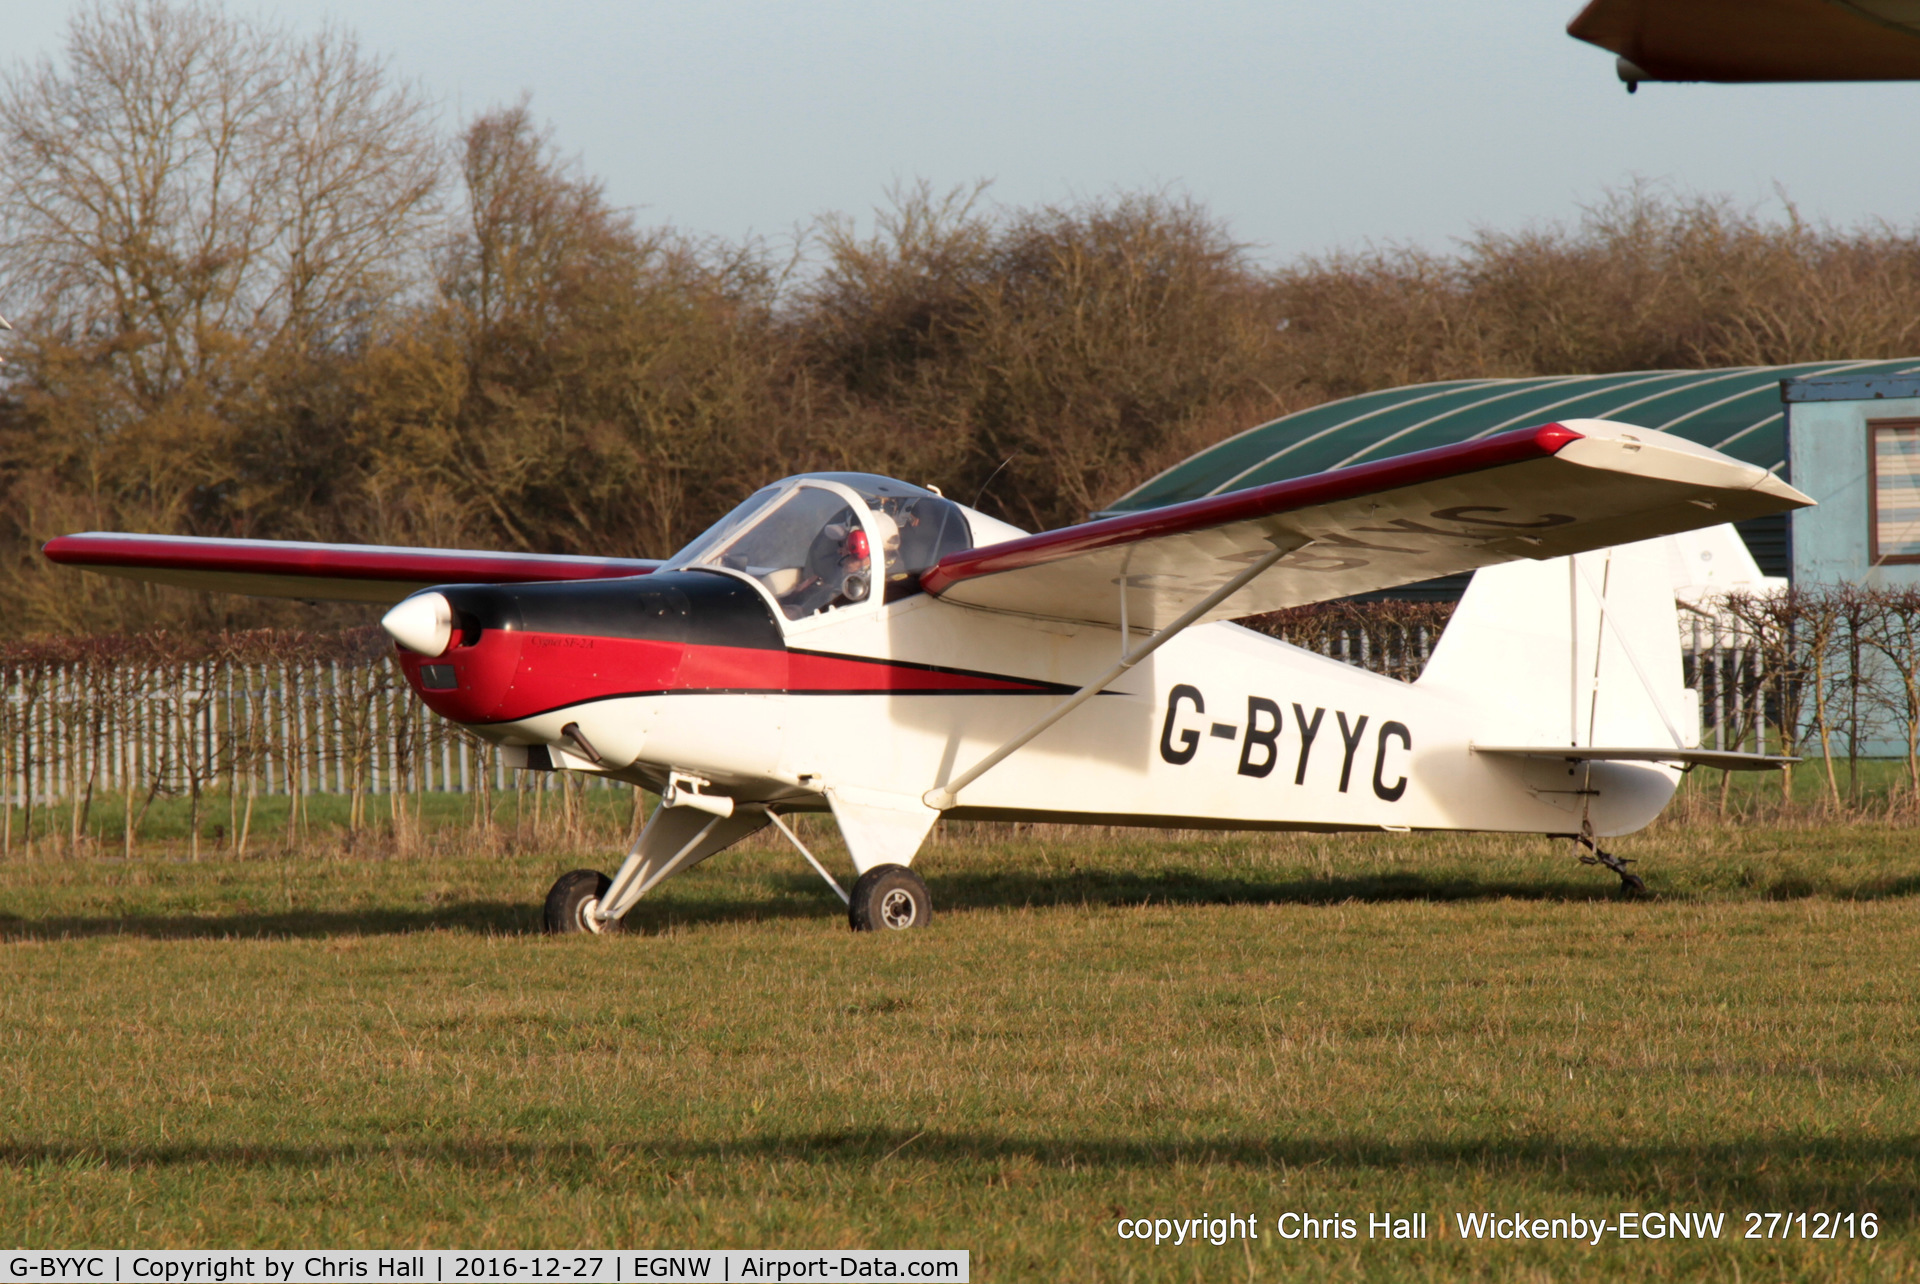 G-BYYC, 2000 Hapi Cygnet SF-2A C/N PFA 182-12311, at the Wickenby